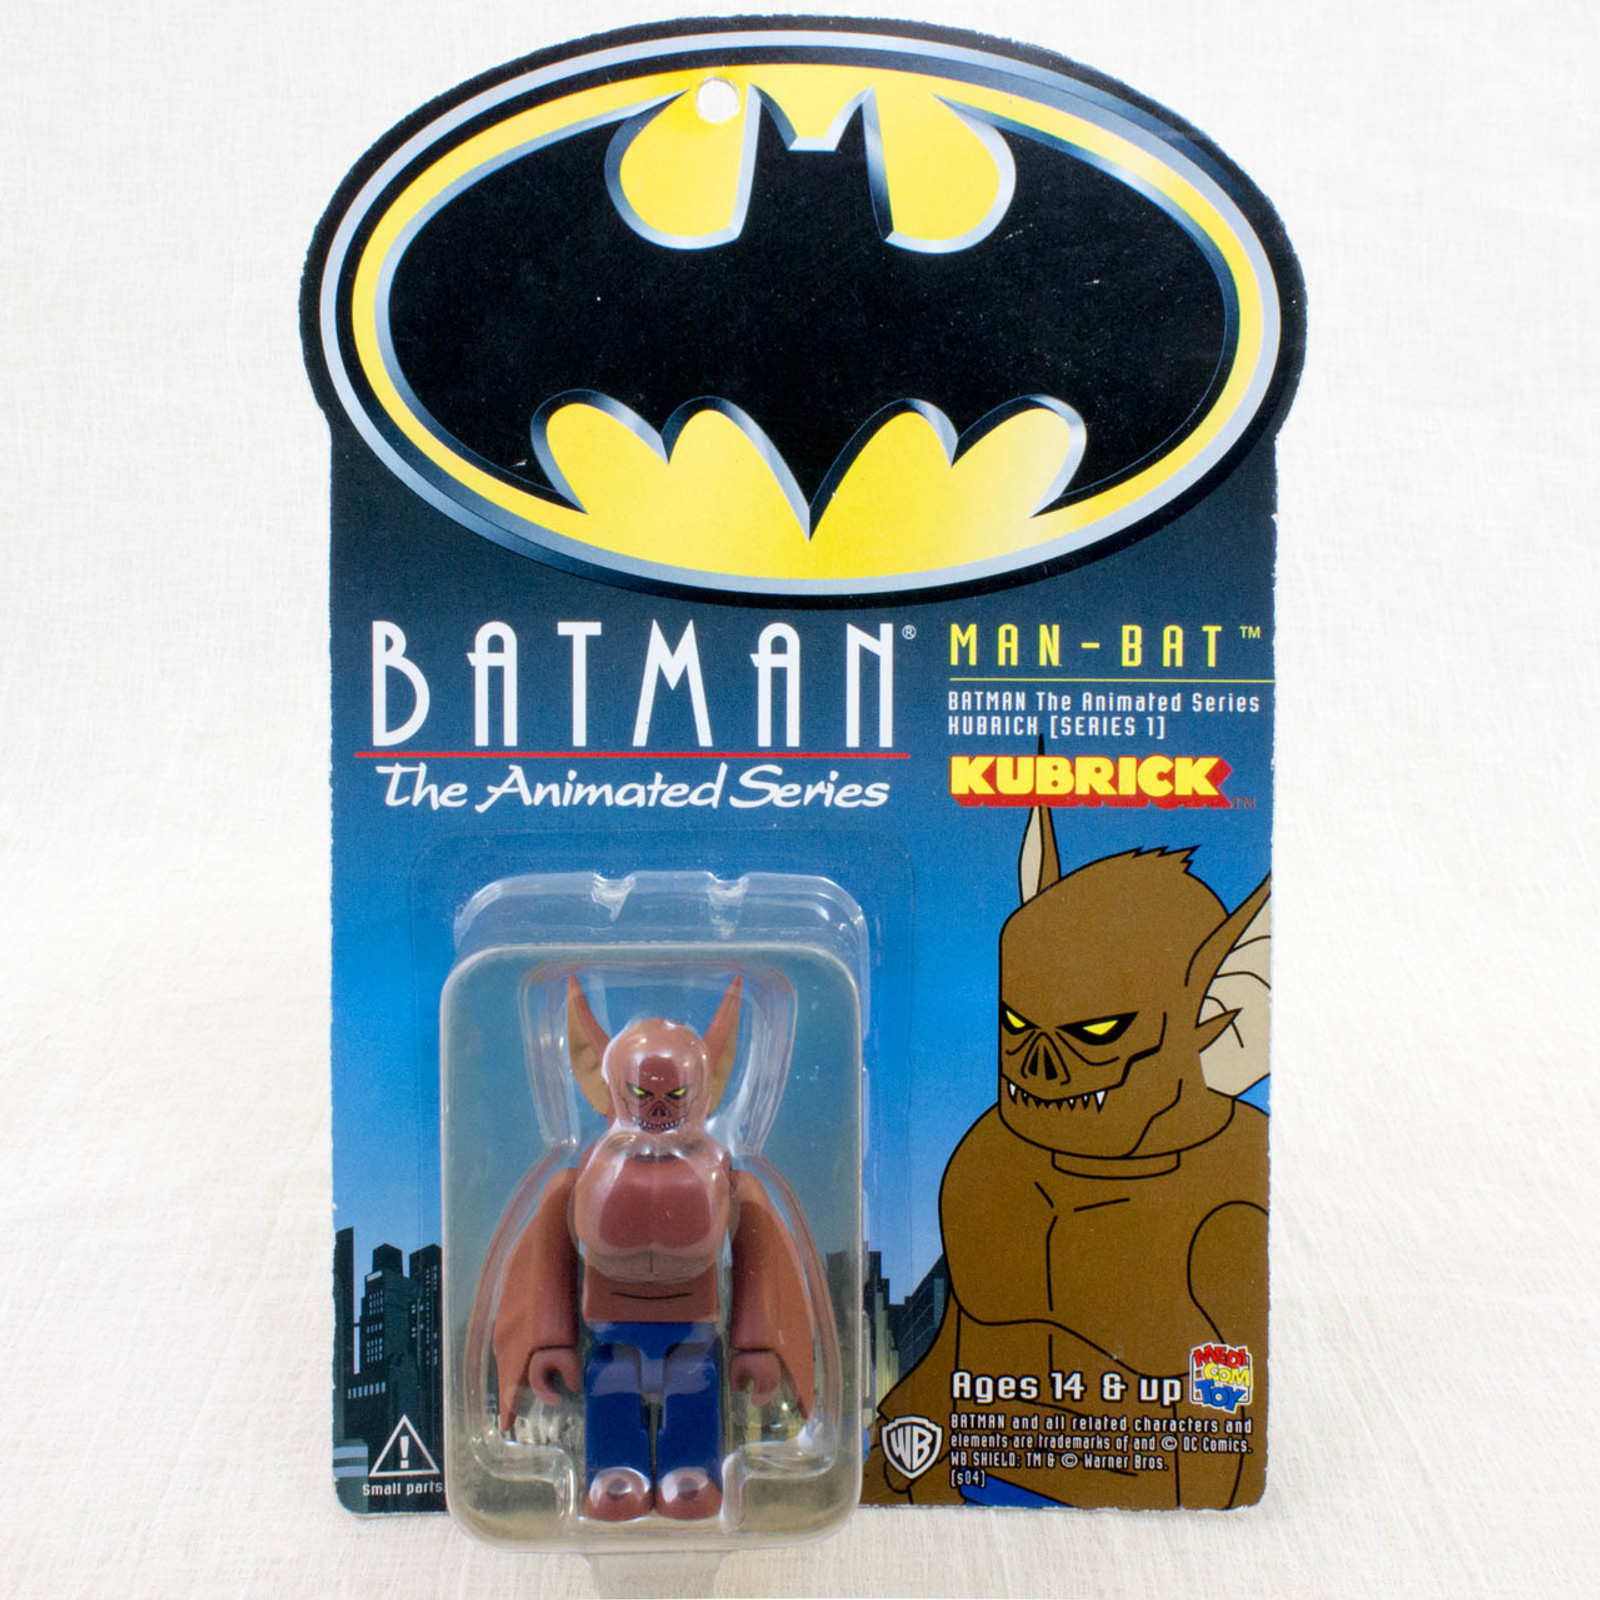 Batman Animated Man-Bat Kubrick Medicom Toy Figure JAPAN